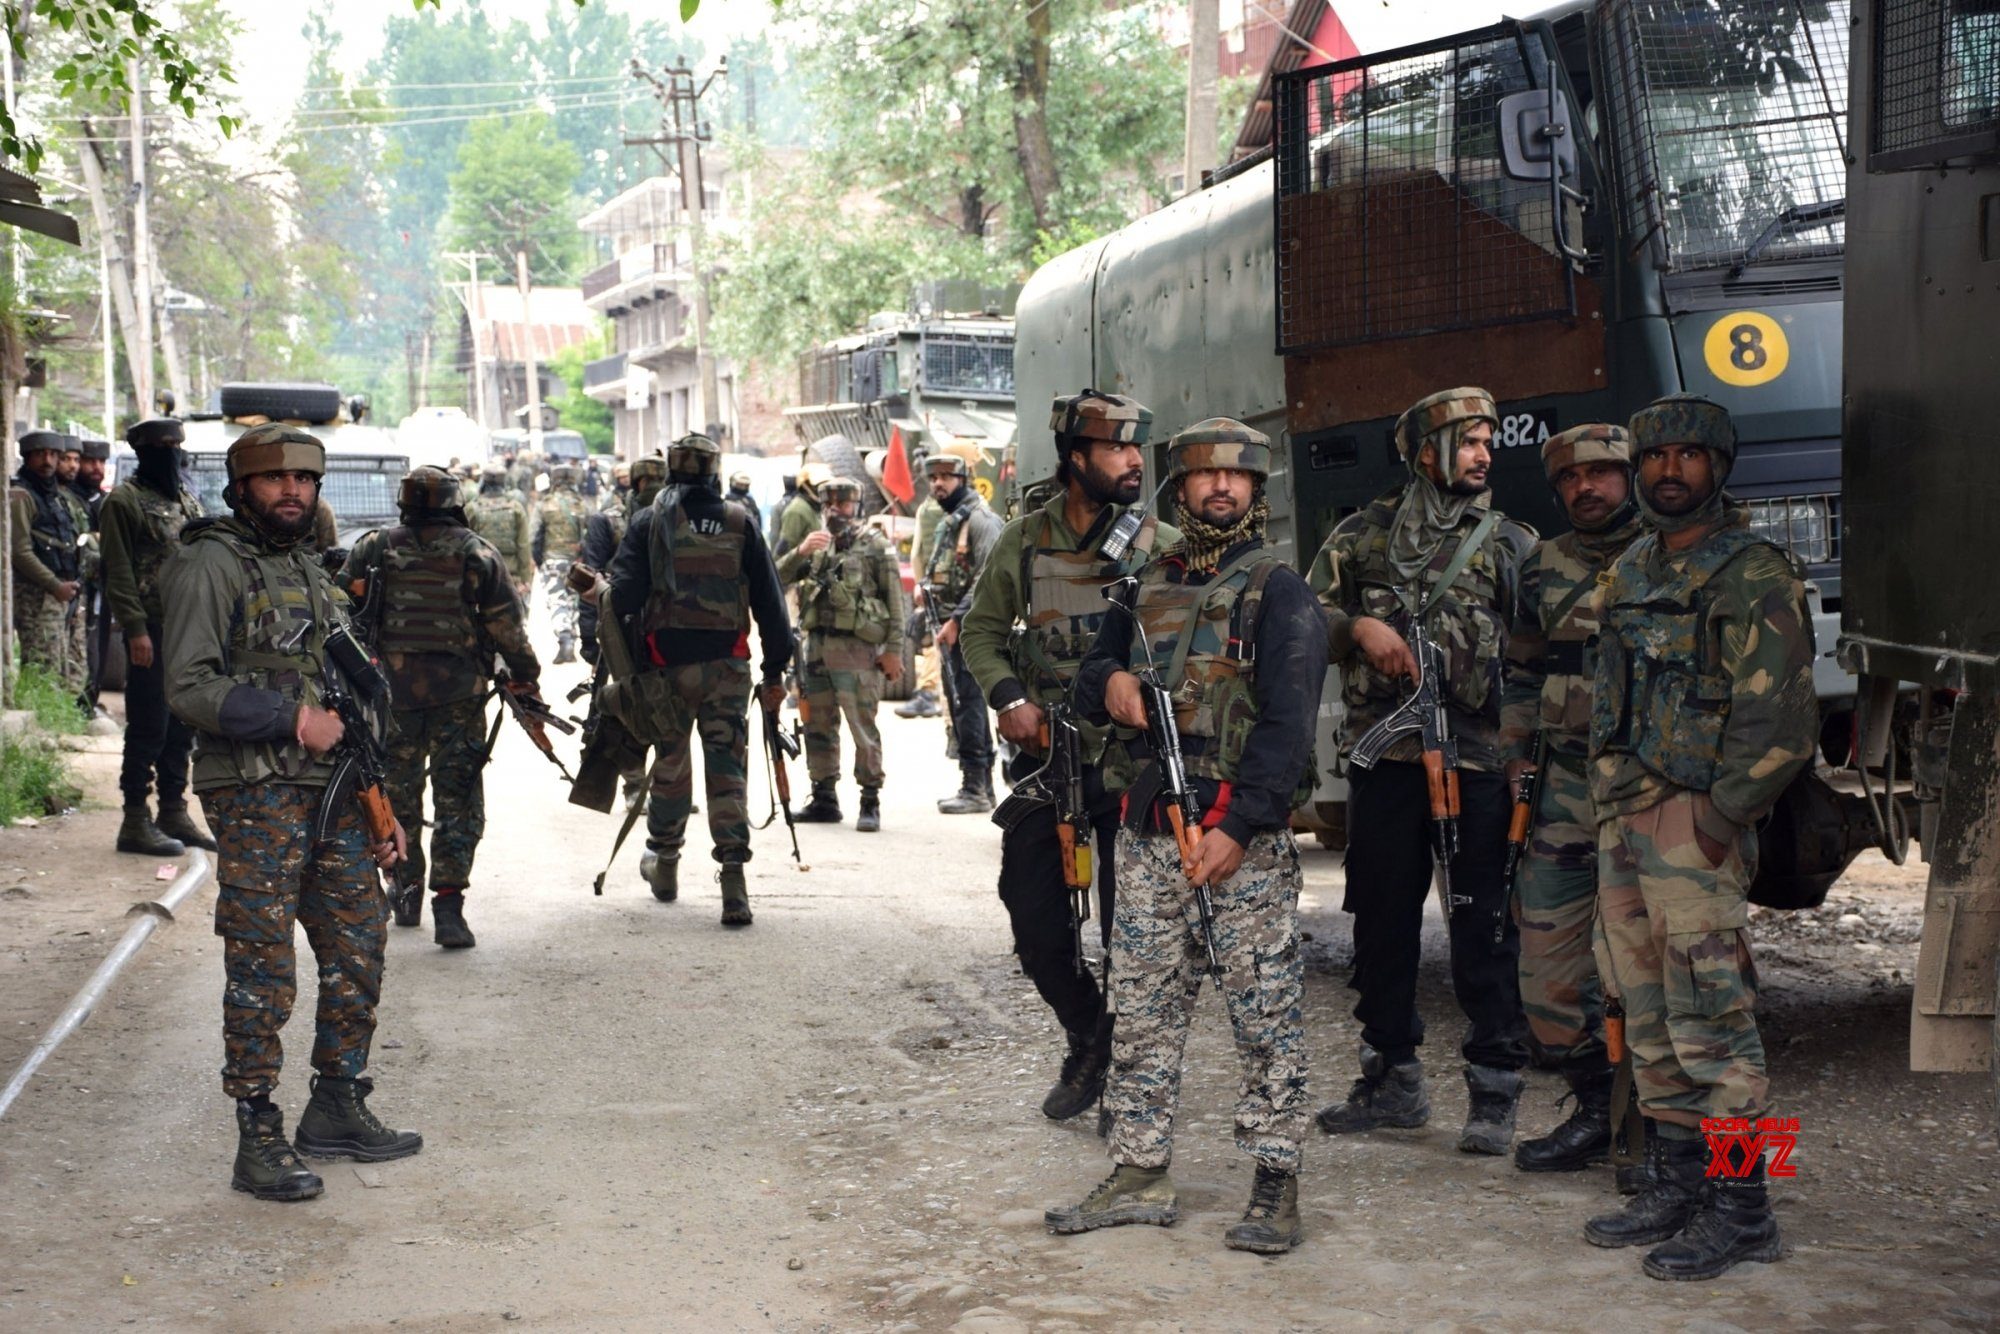 Pulwama: Top JeM commander among 5 killed in J&K gunfight #Gallery